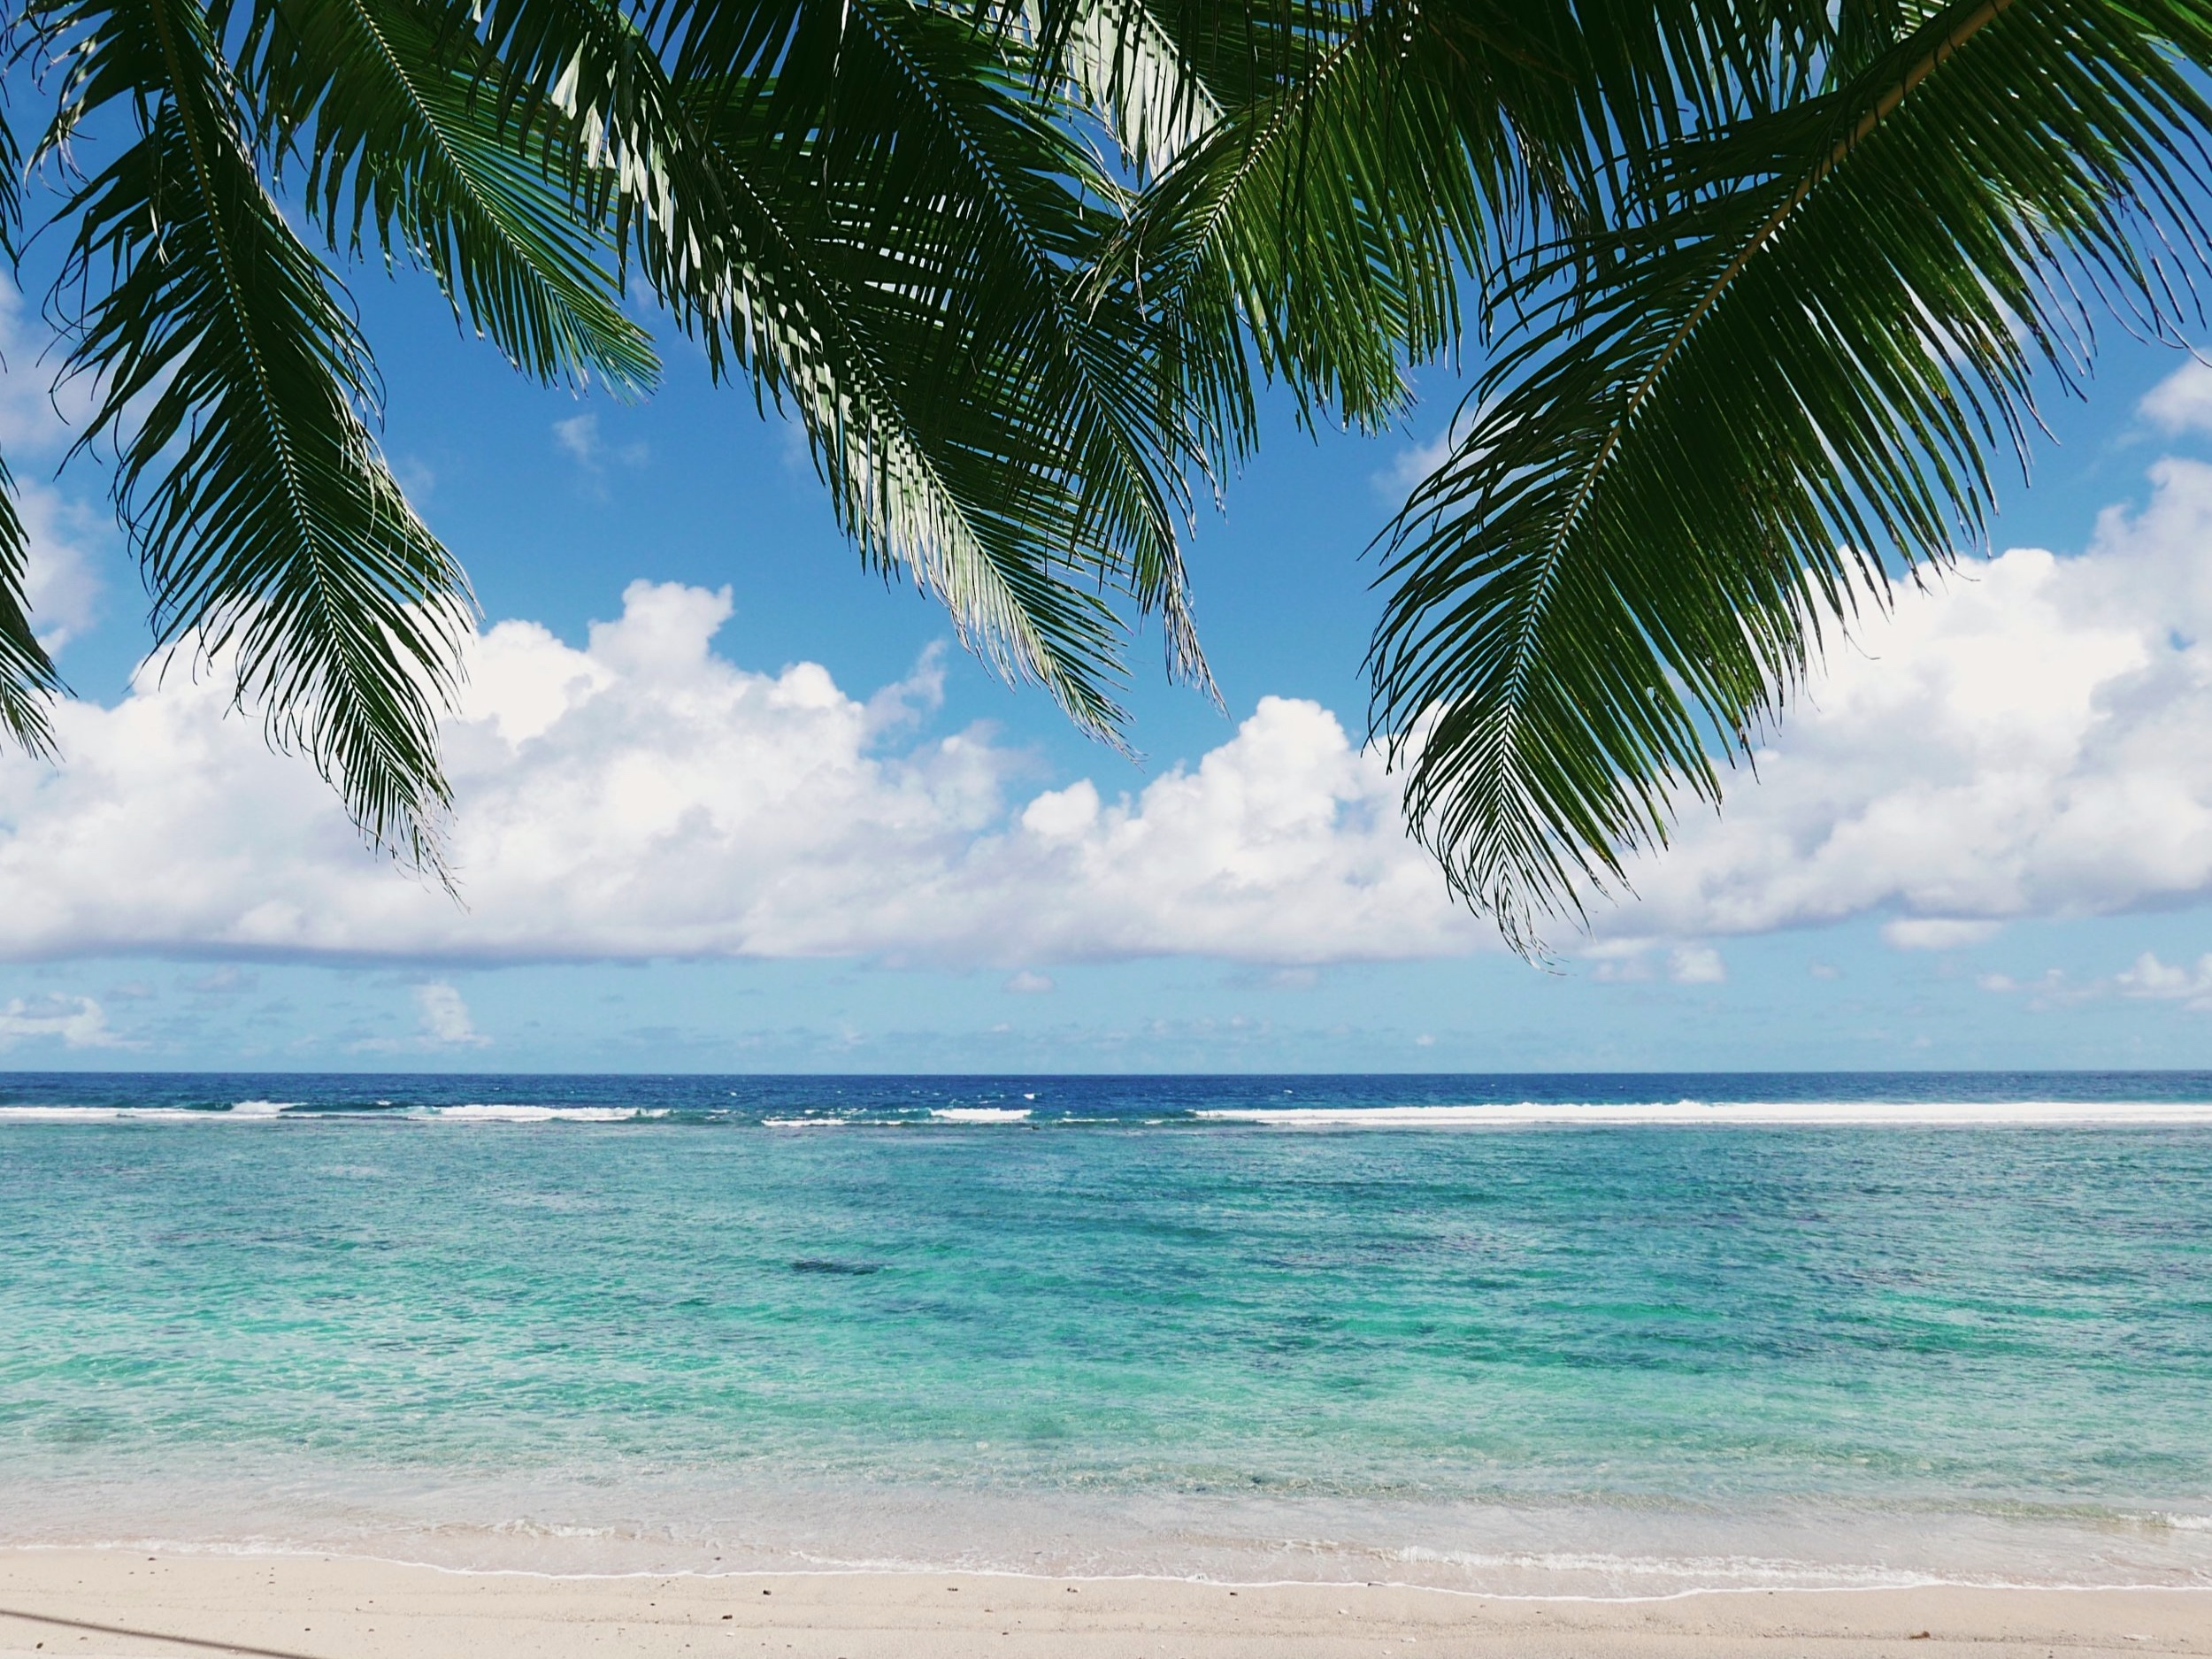 Top things to do in Samoa - 14 ideas to make the most of paradise